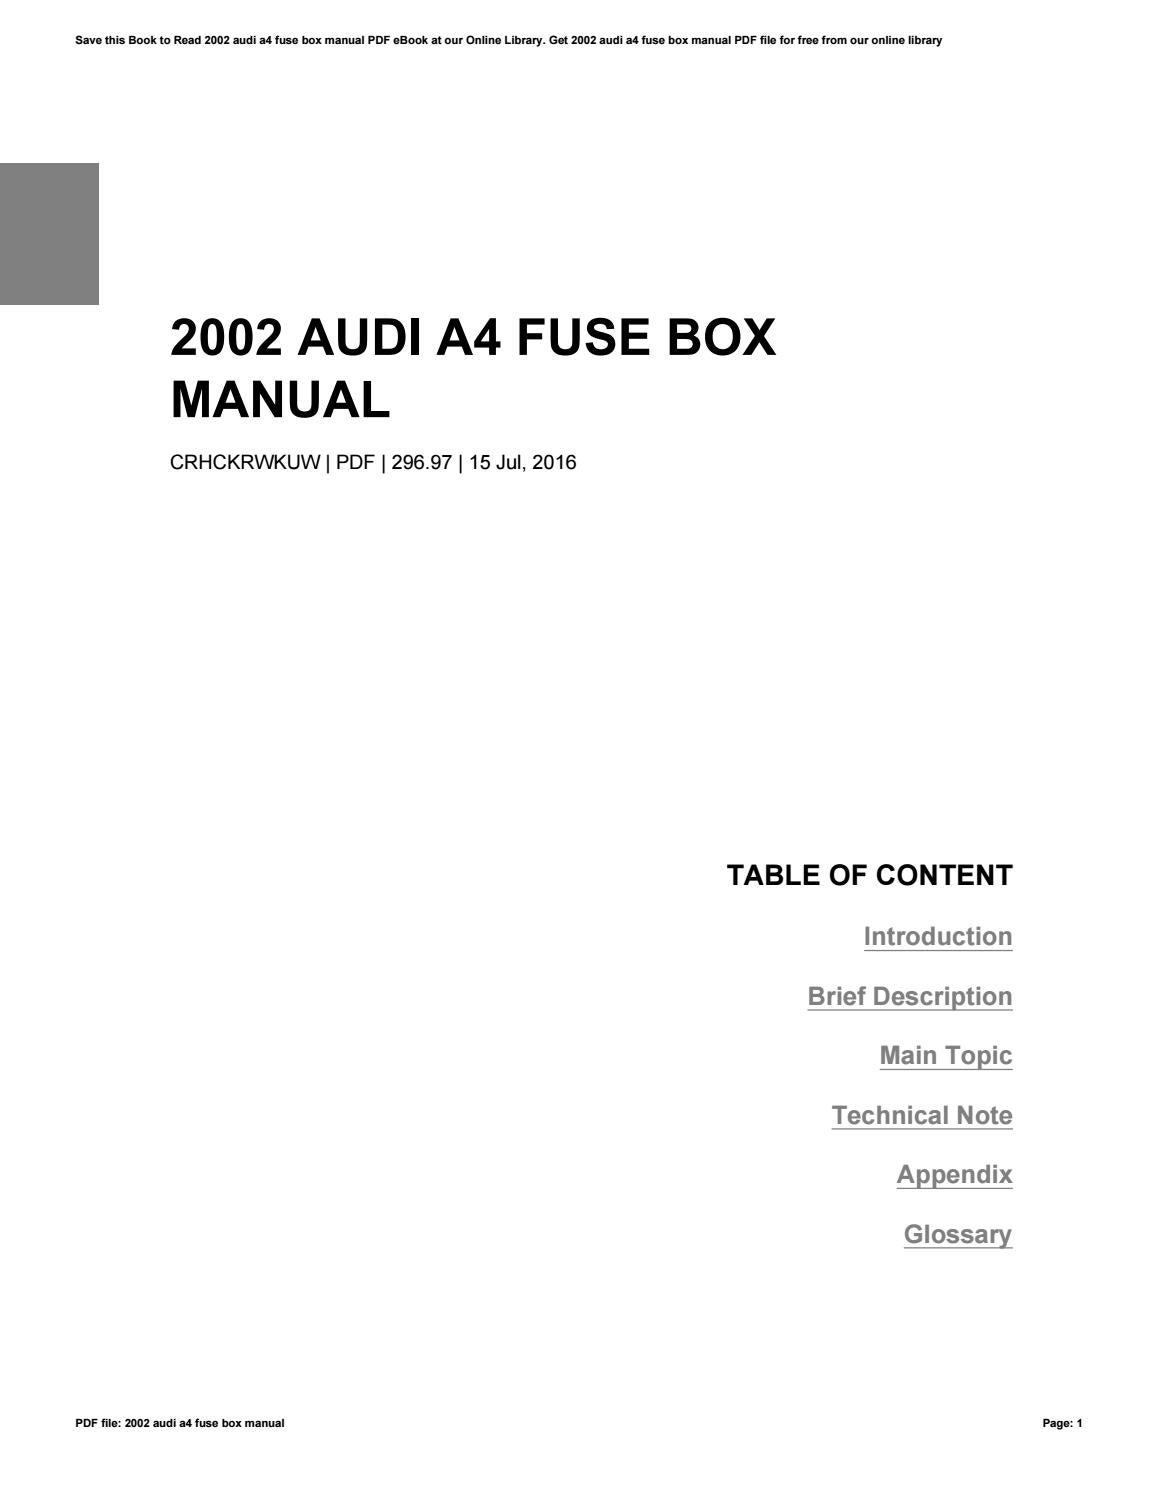 hight resolution of fuse box in audi a4 2002